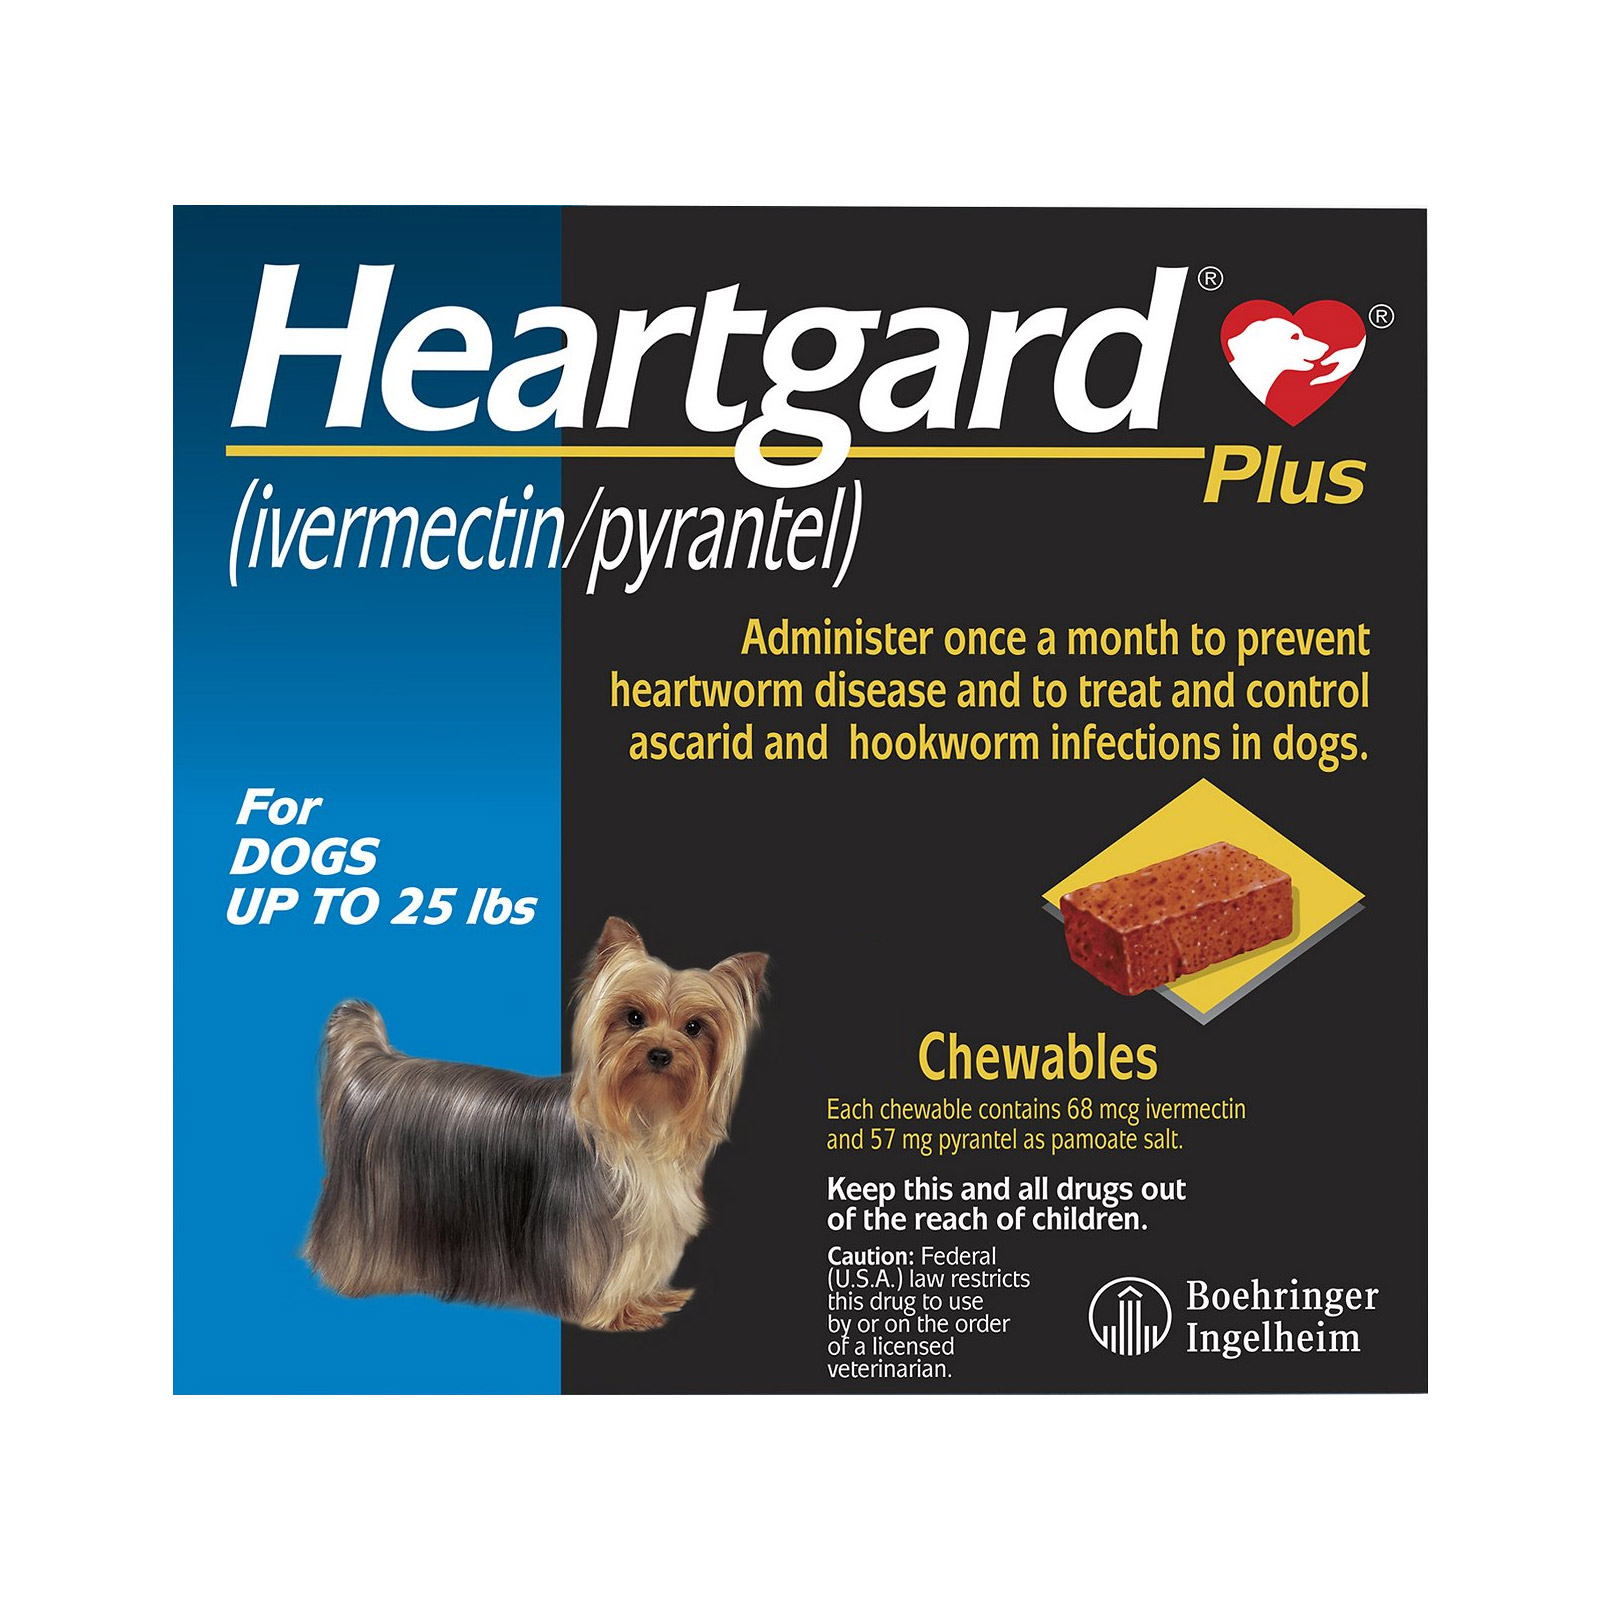 Heartgard Plus Blue